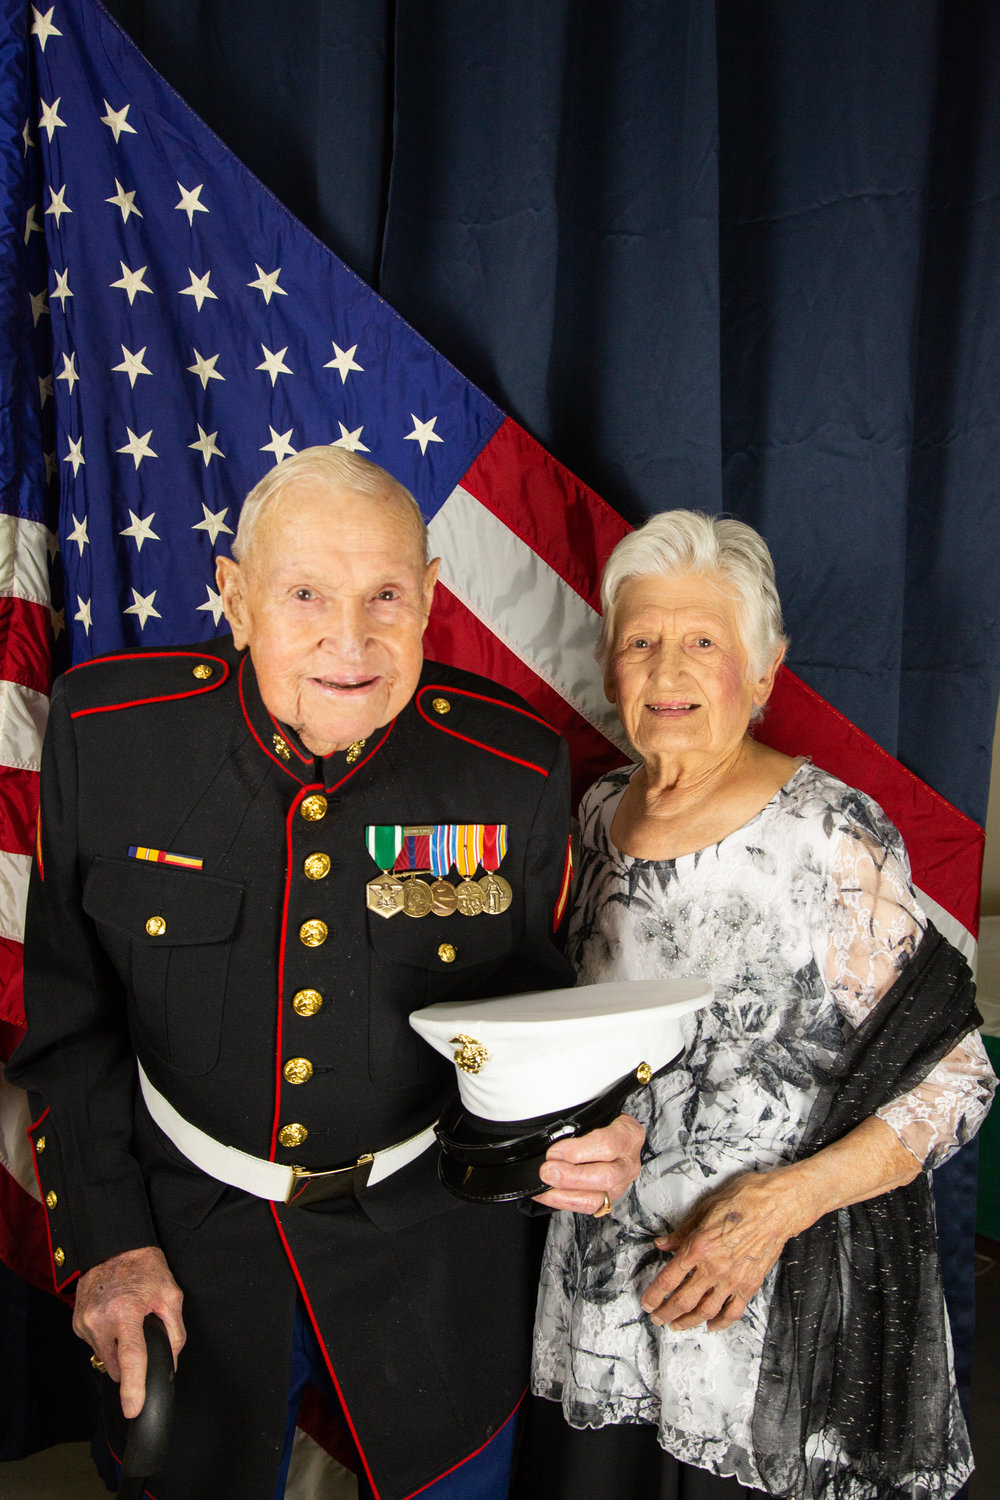 Private First Class James Krodel and his wife Mary Krodel. Krodel fought in Japan during World War Two as part of the 3rd Marine Division. He was nearby when the 5th Marine Division raised the flag on Mount Suribachi during the bloody battle of Iwo Jima.